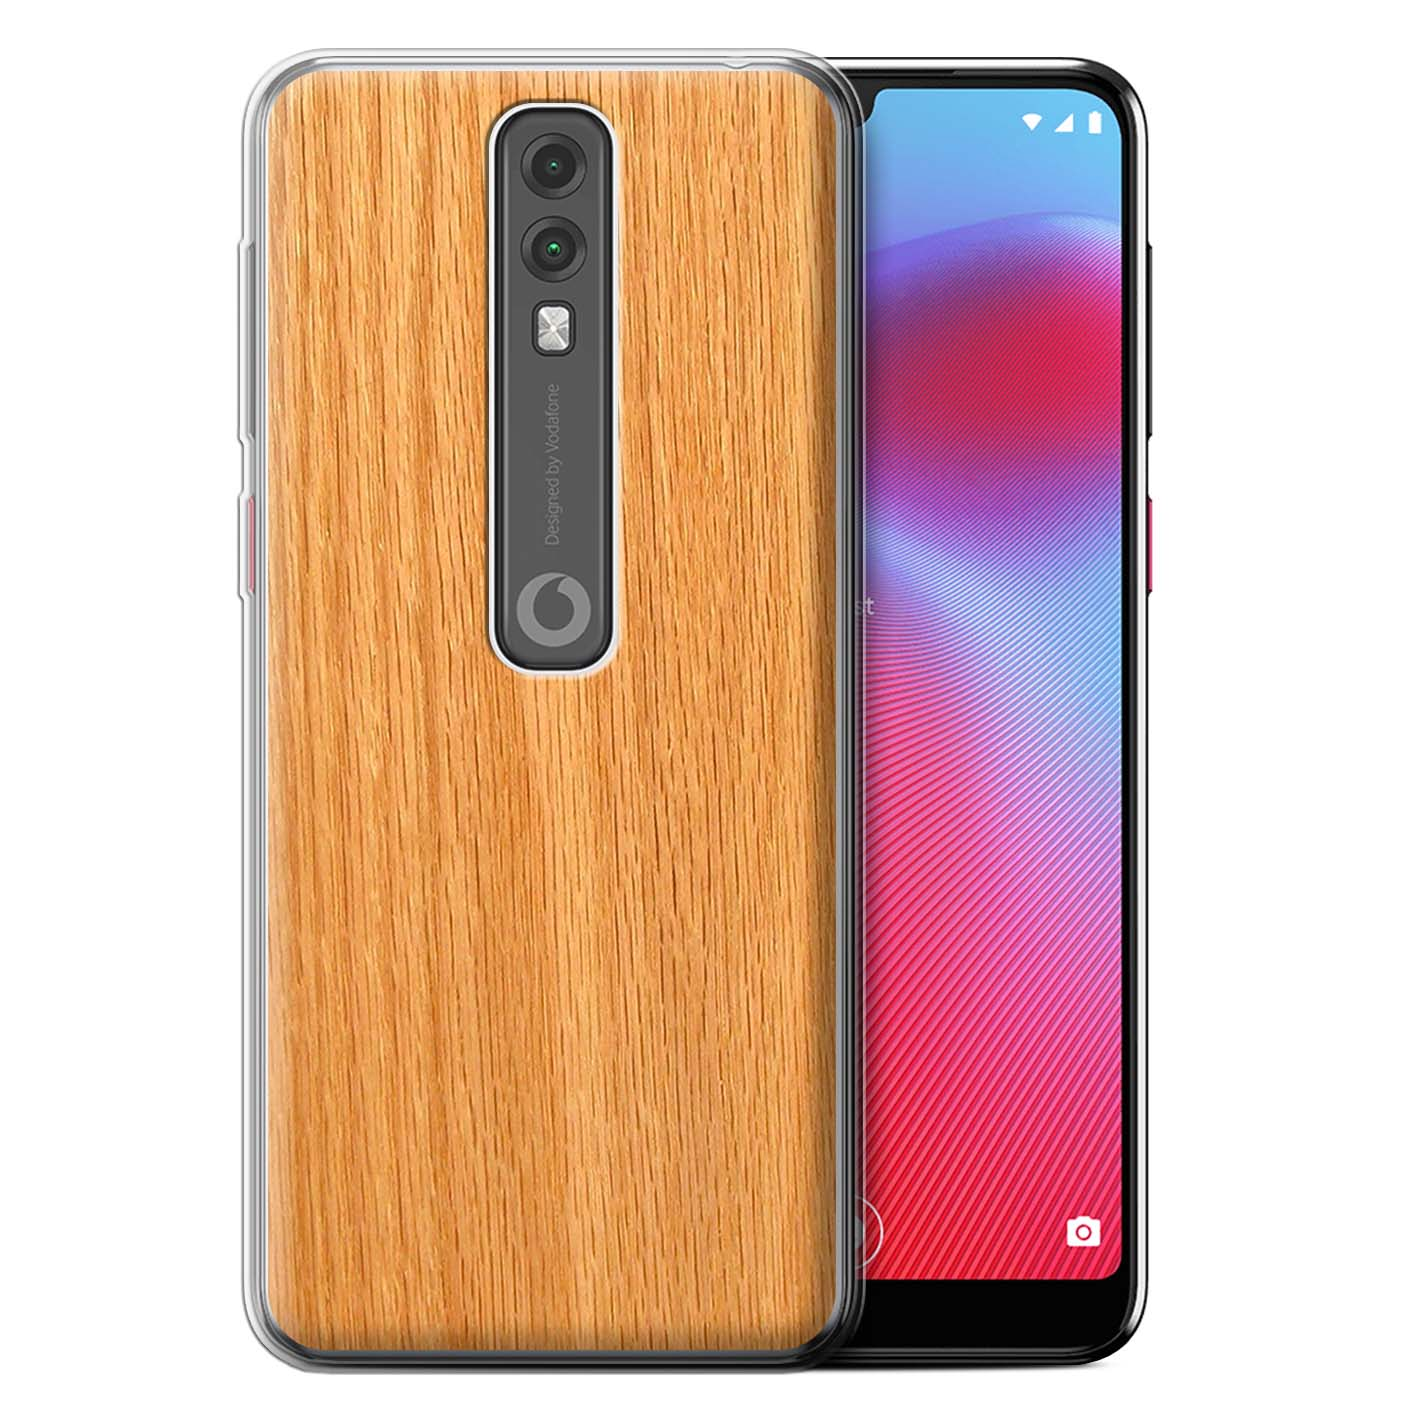 Gel-TPU-Case-for-Vodafone-Smart-V10-Wood-Grain-Effect-Pattern thumbnail 12